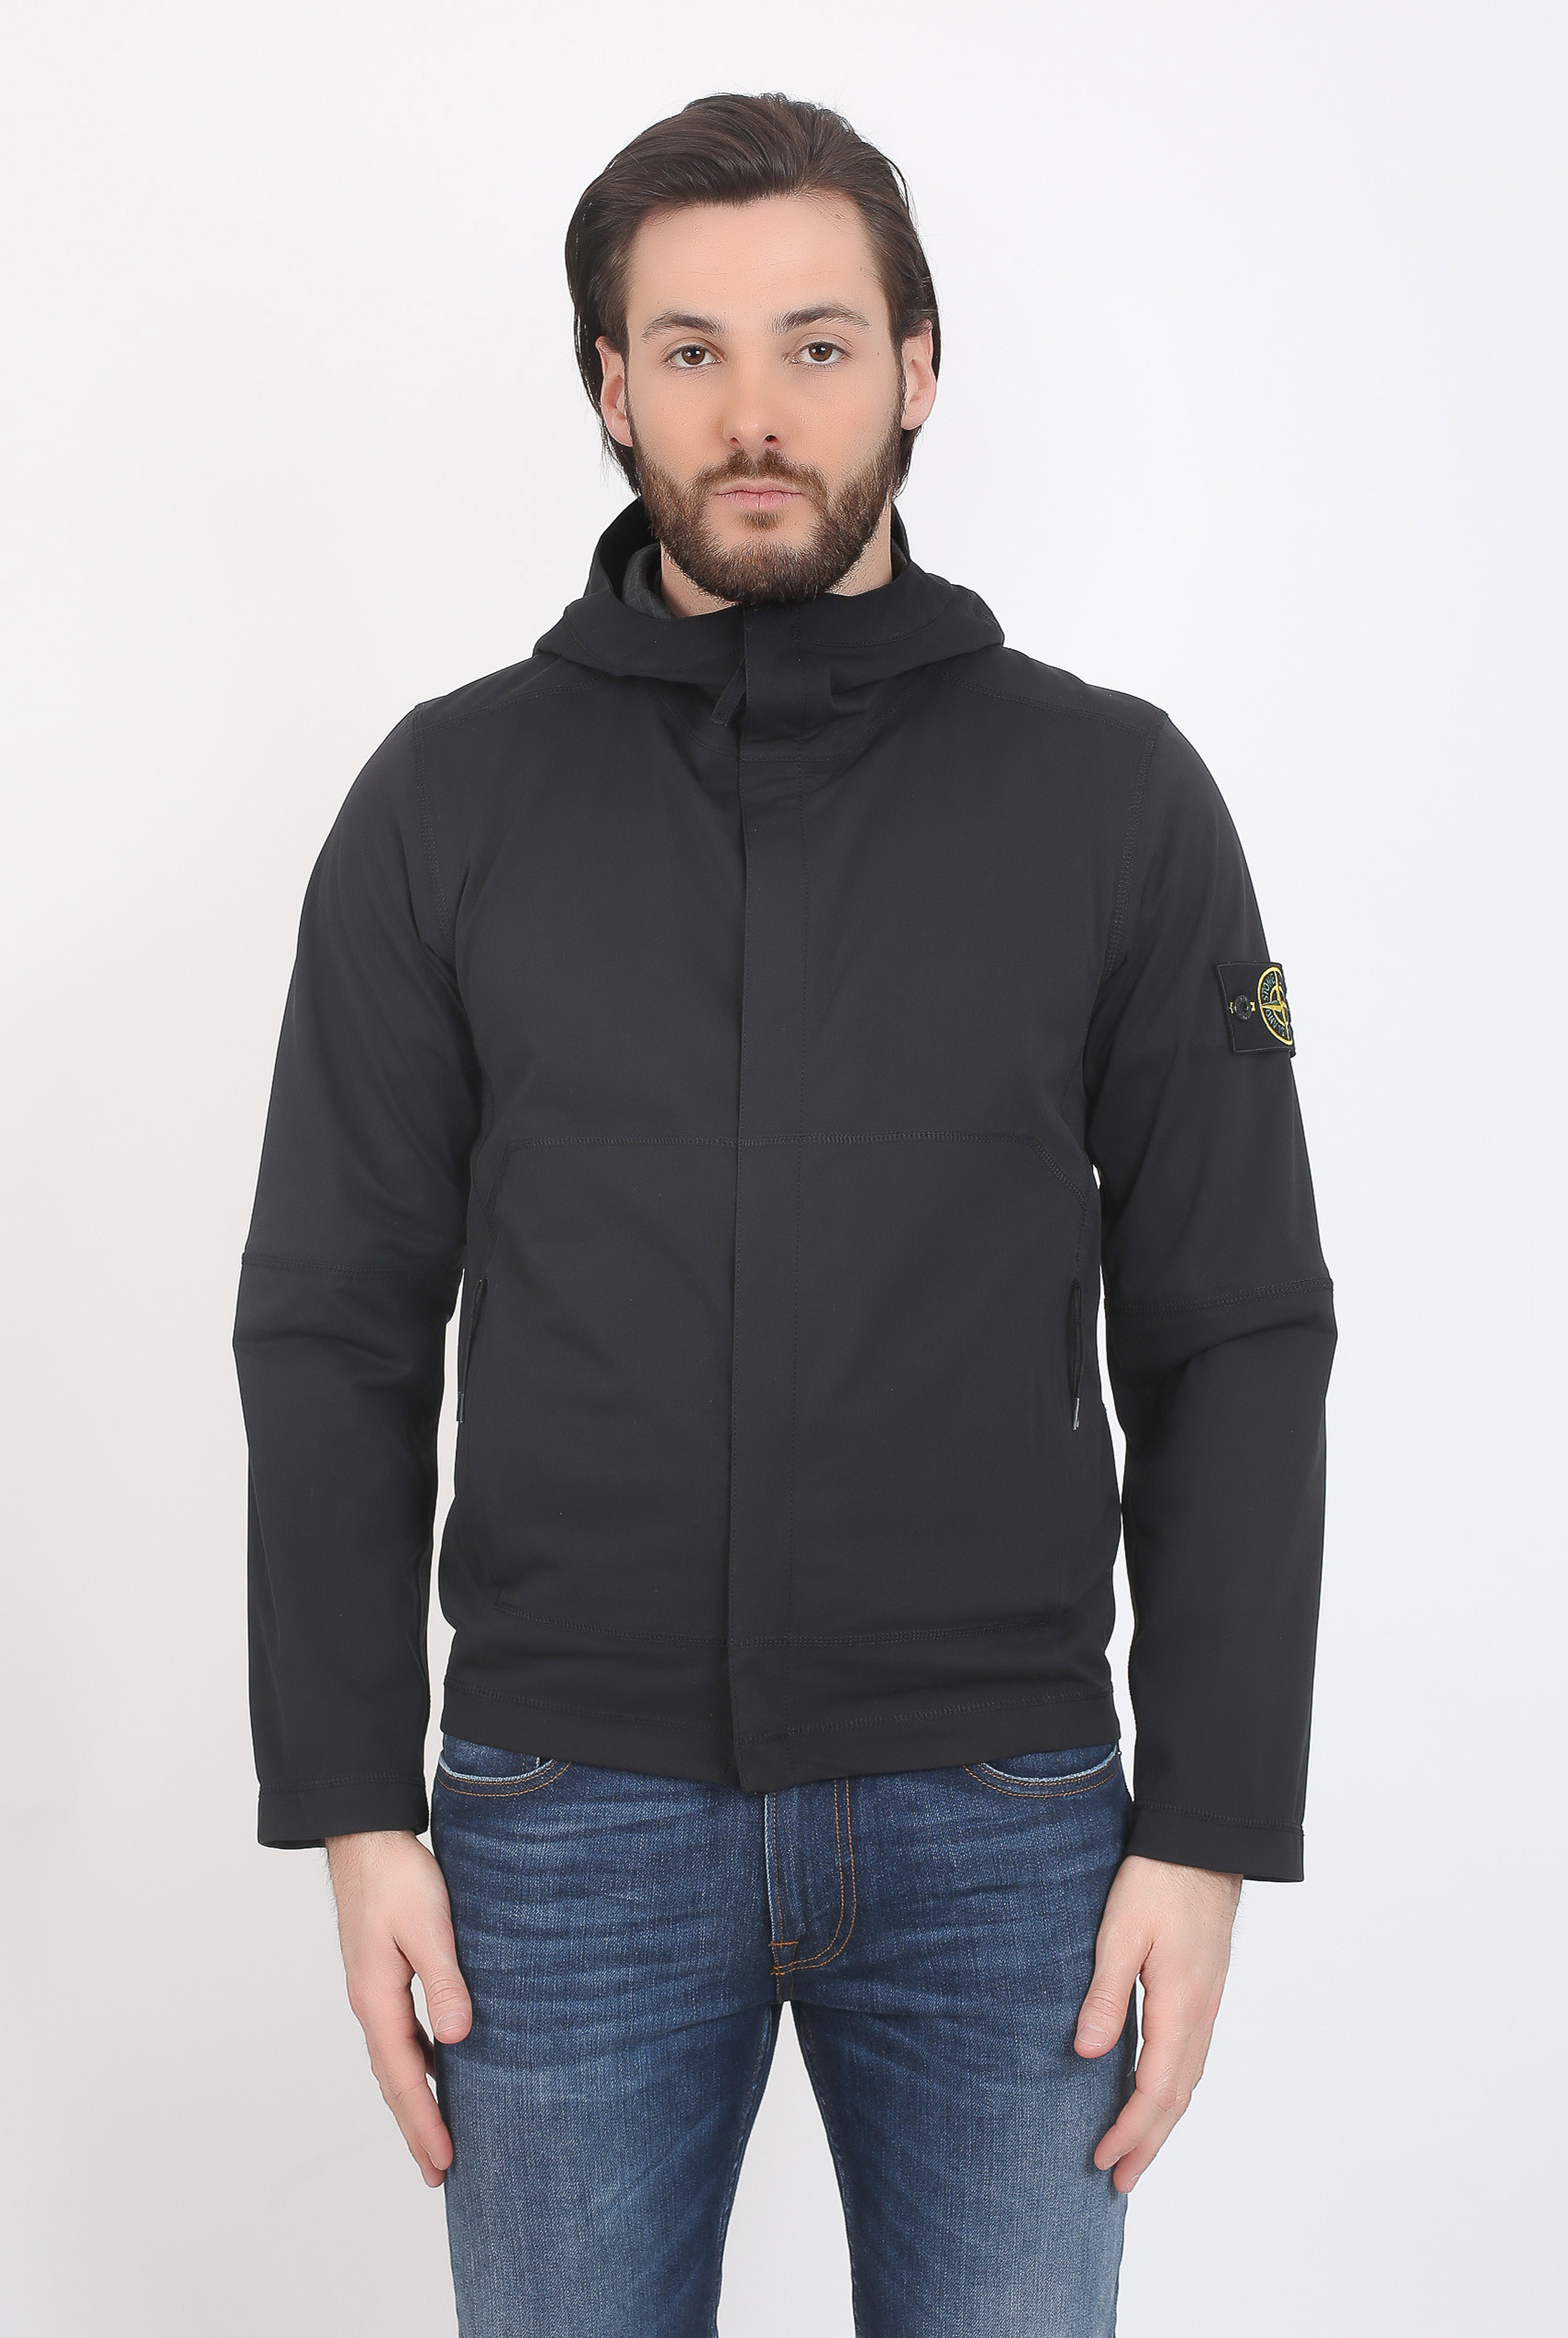 BLOUSON STONE ISLAND LIGHT SOFT SHELL NOIR 681542426-V0029